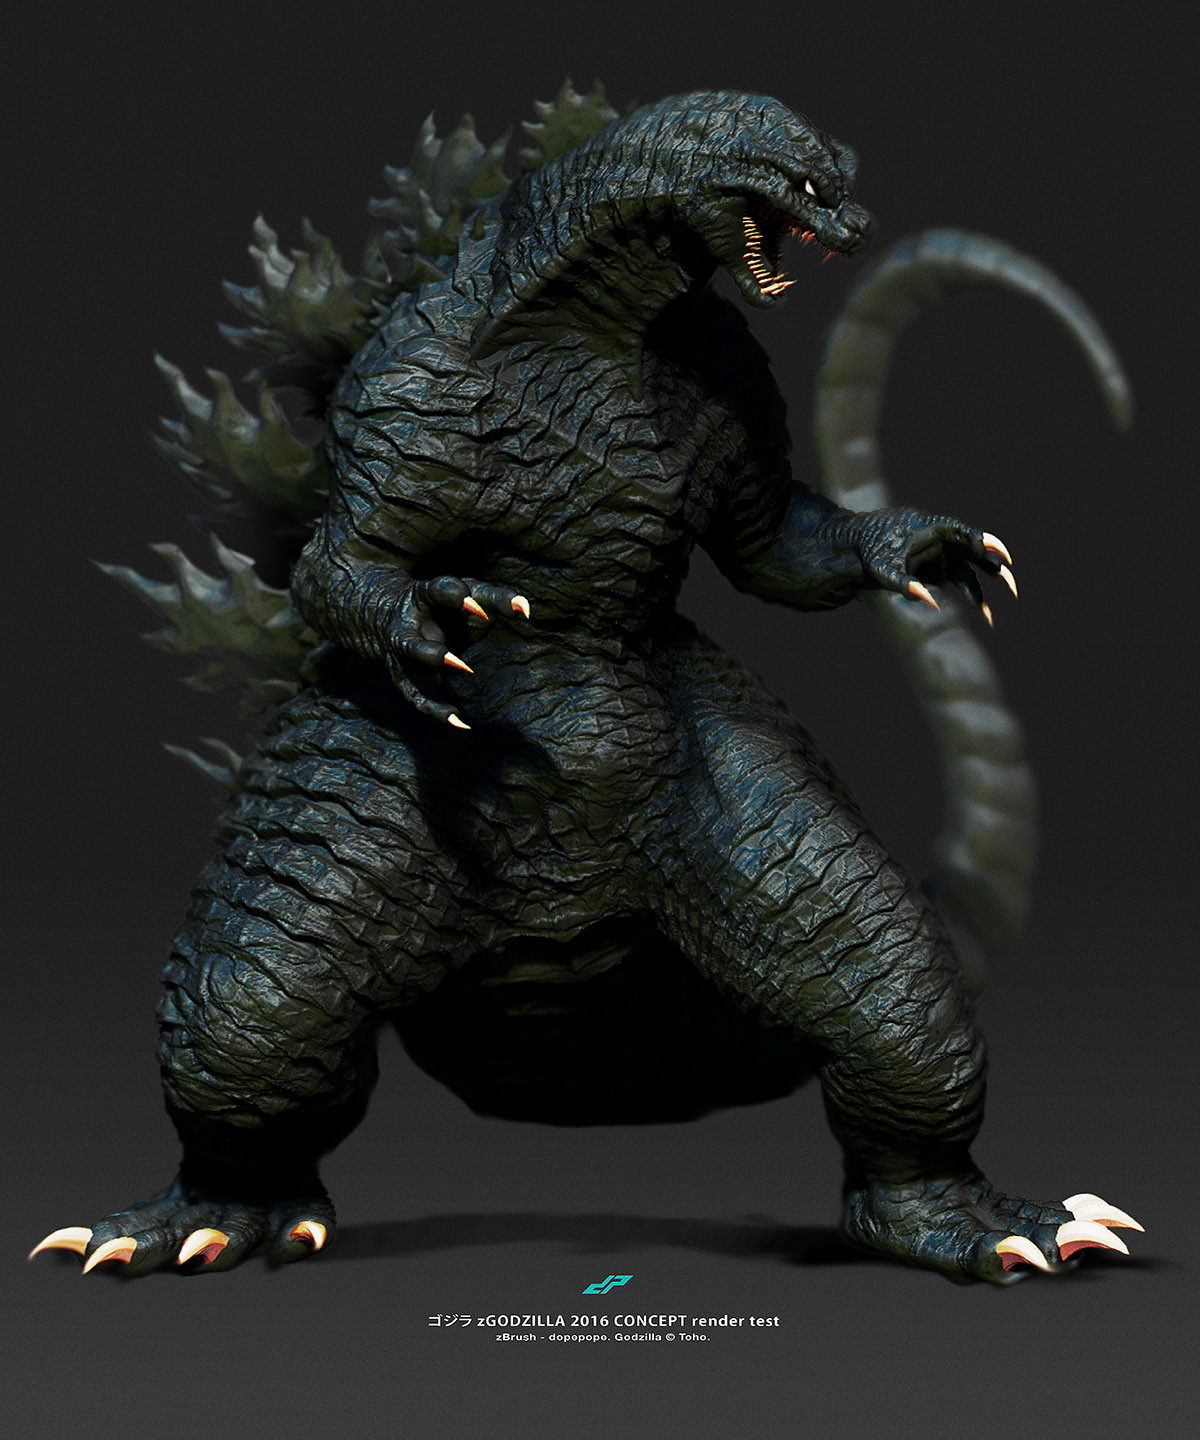 Dope pope zgodzilla2016 concept render test by dopepope